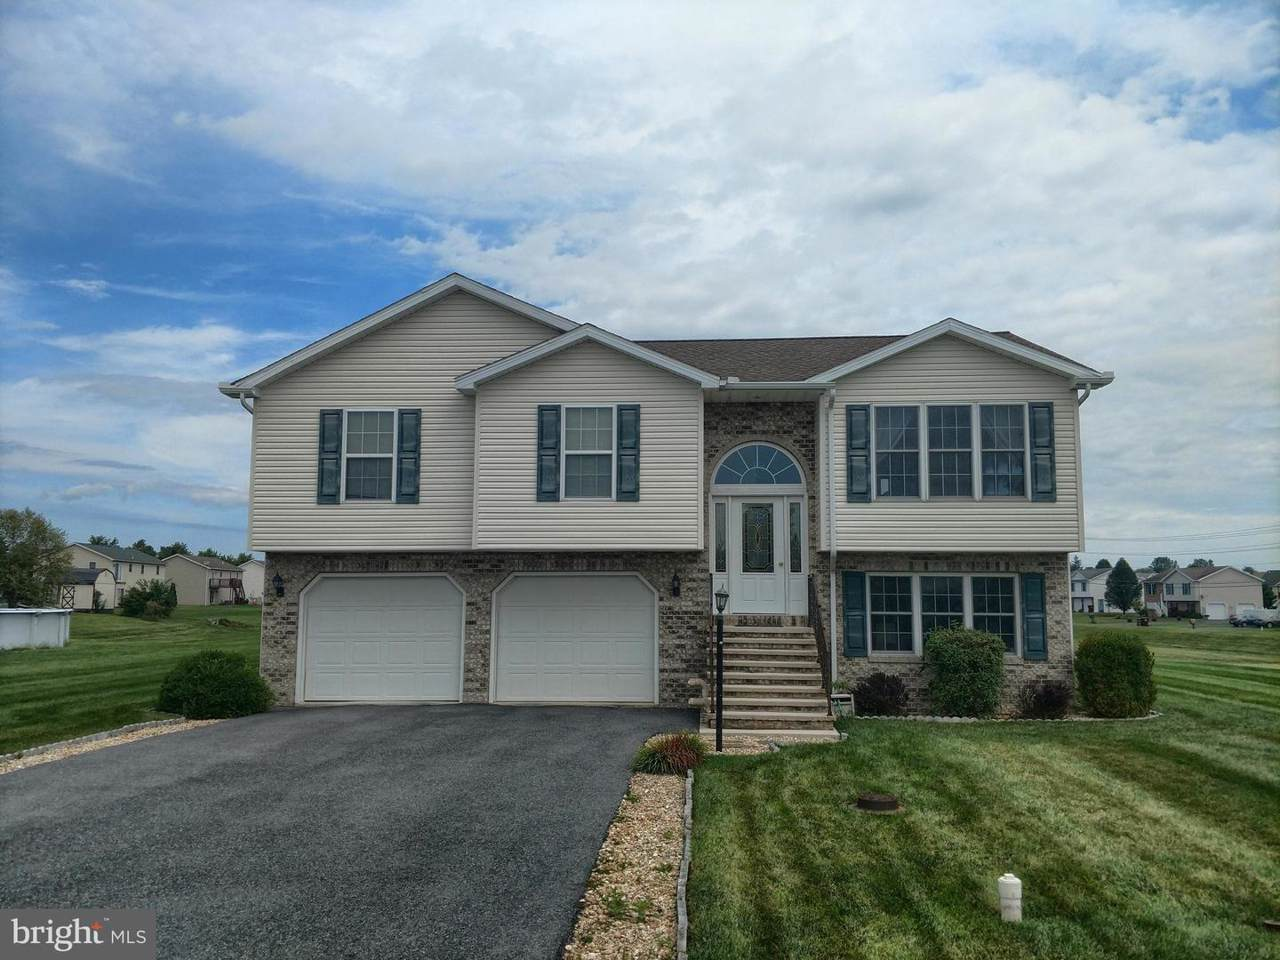 102 Ely Drive - Photo 1